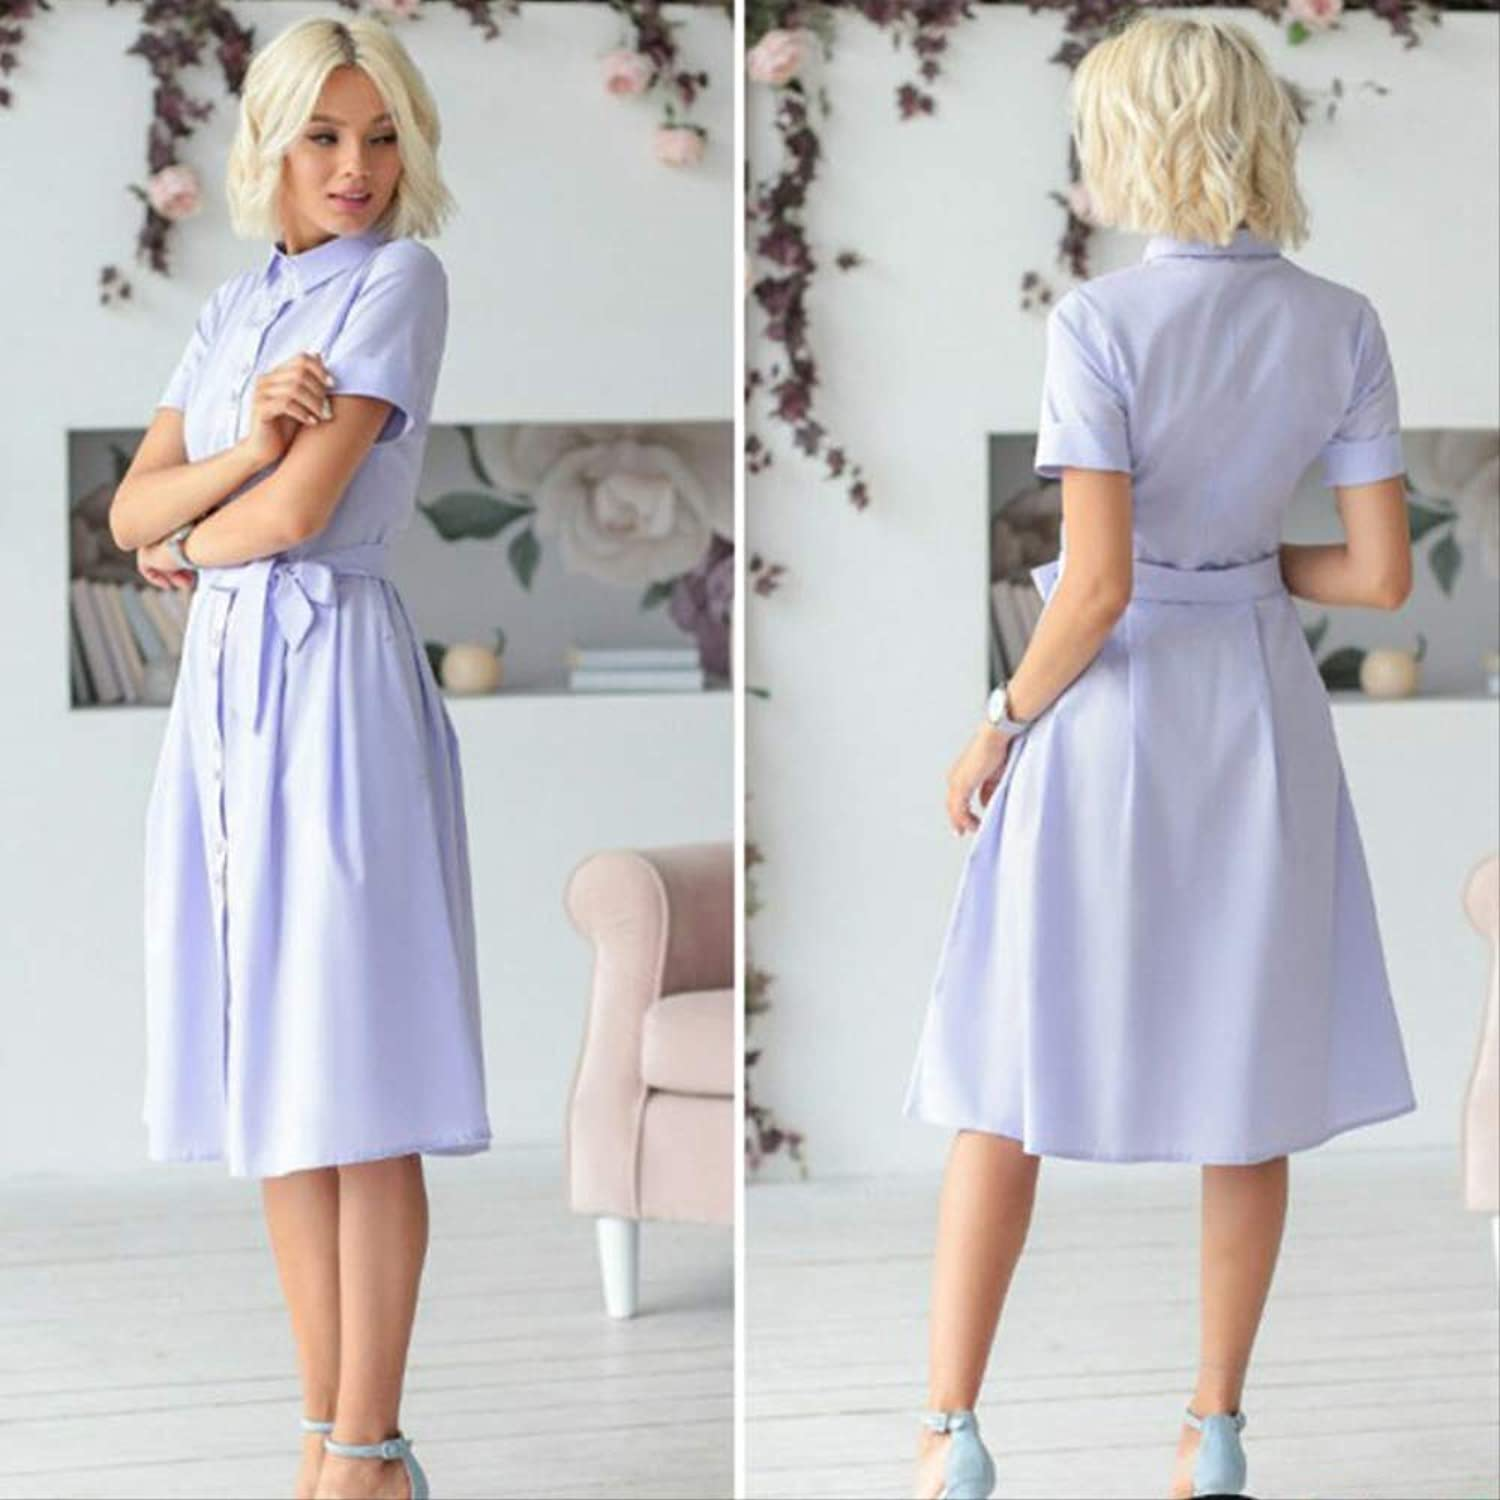 YKDDEE High-end skirt Women Vintage Sashes Button A-line Party Dress Short Sleeve Turn Down Collar Casual Dress Summer Comfortable Skirts Can Give You Confidence XL